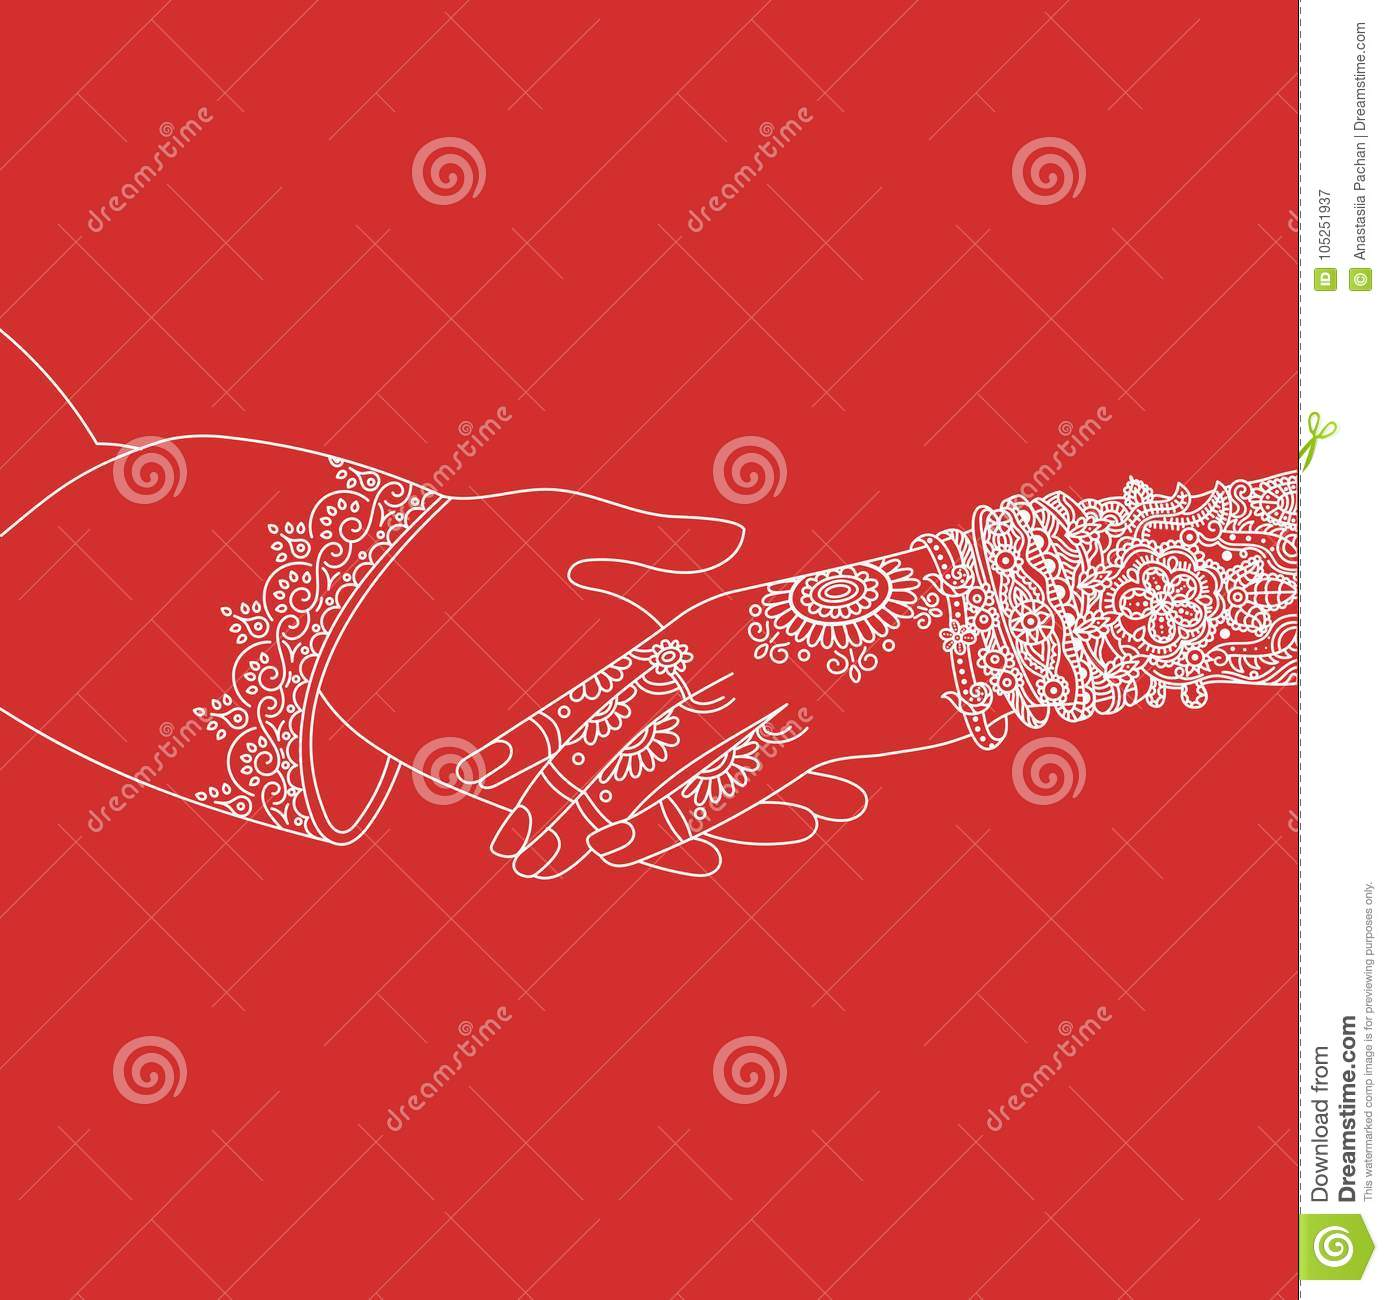 Wedding Indian Invitation Card Ceremony White Lines .India Marriage ...